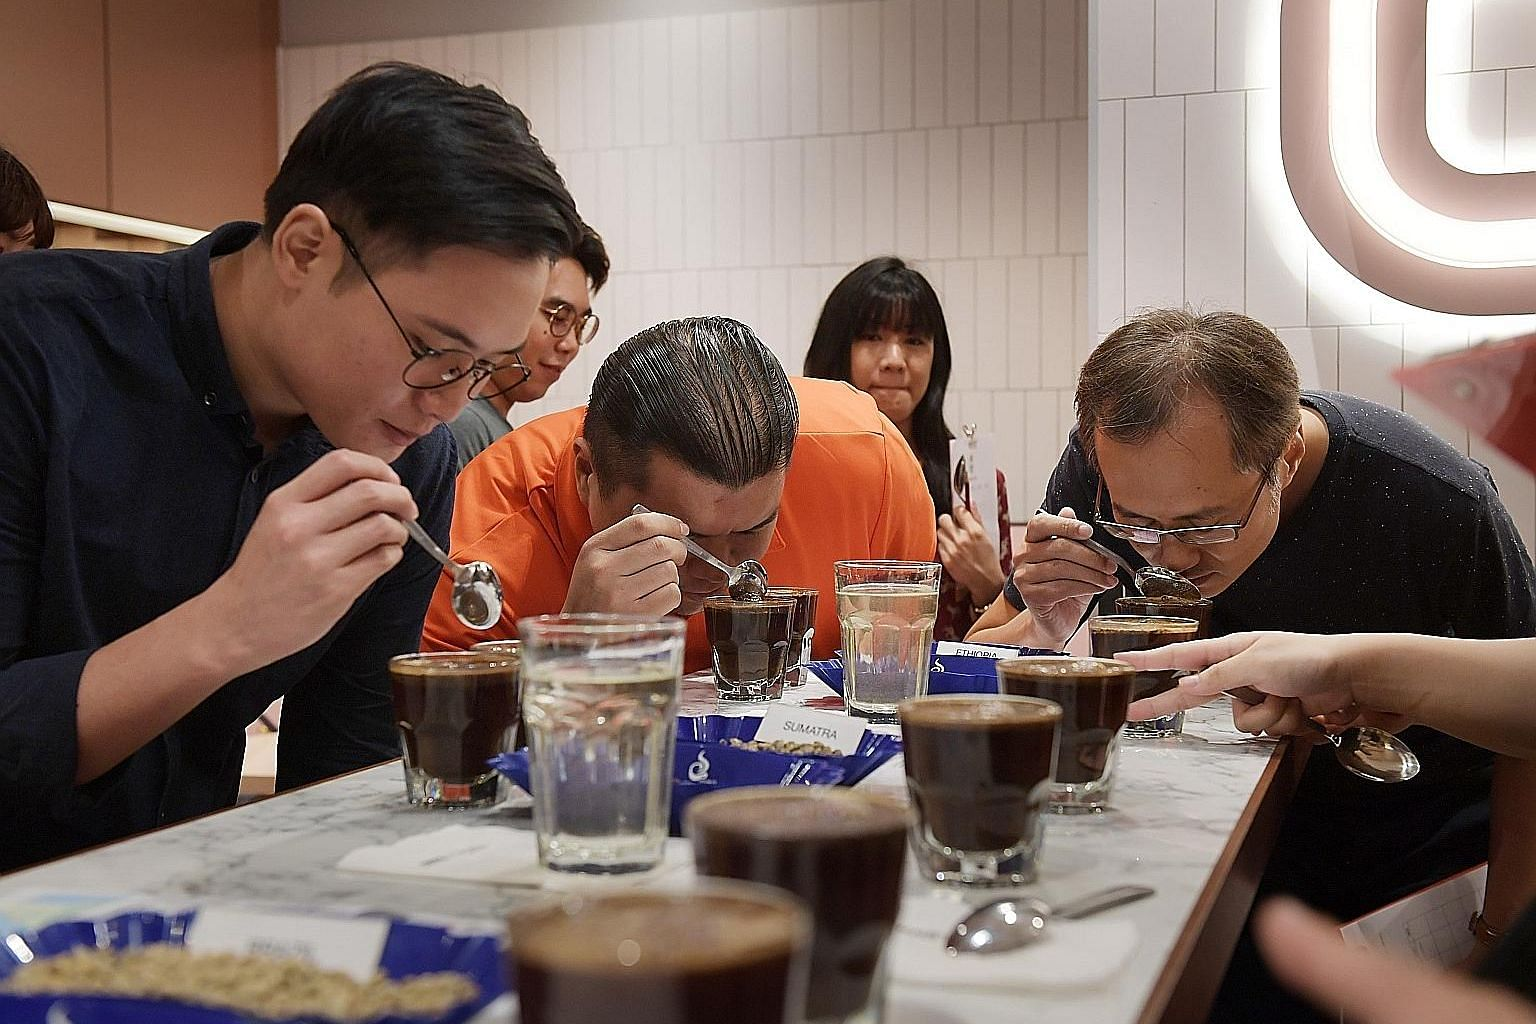 At Jewel Coffee, participants make tasting notes as they smell and sip different types of coffee. They also got to try cupping, a coffee-tasting technique, to evaluate the aroma and flavours of different beans.